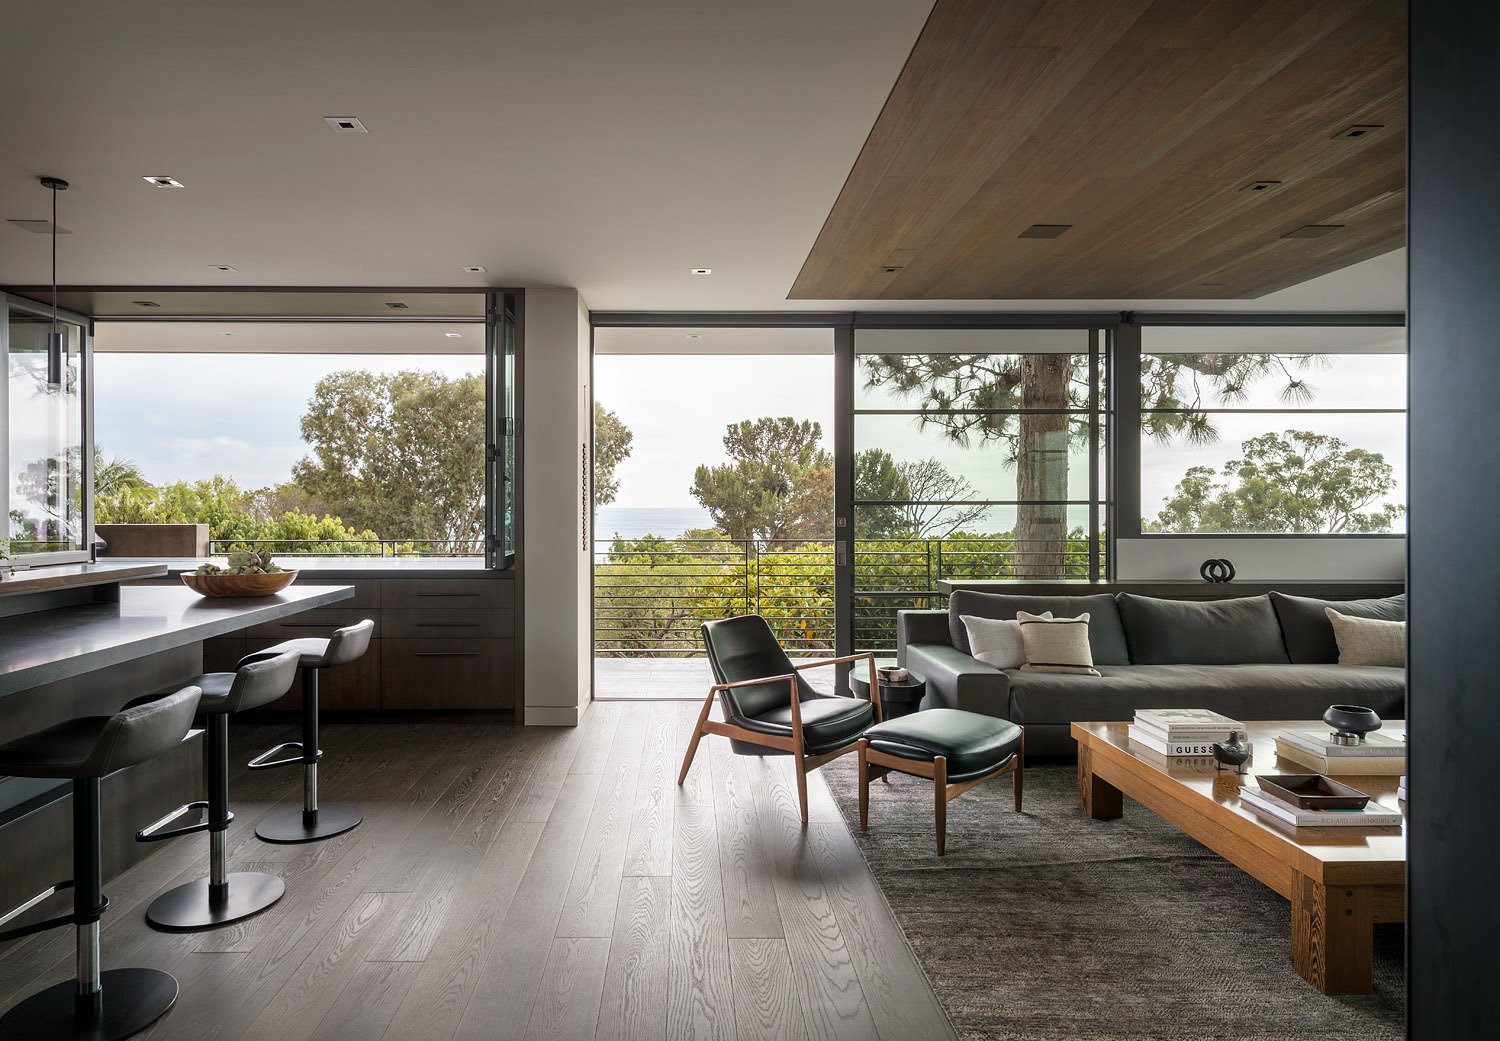 A Southern California Midcentury Gets a Serene, Japanese-Inspired Treatment - Dwell